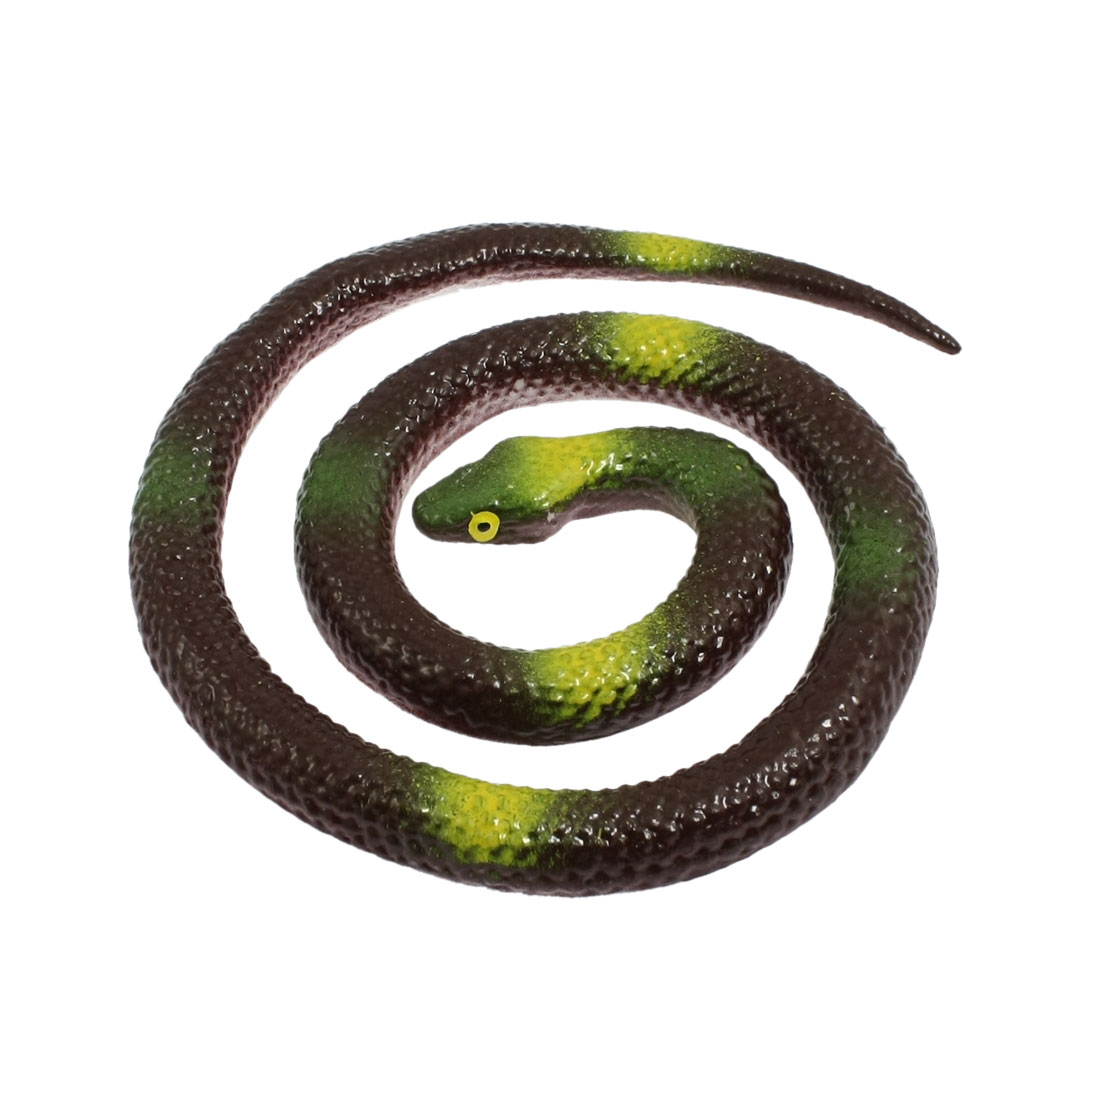 "25.7"" Long Coffee Color Silicone Artificial Snake Fun Joke Trick Toy"